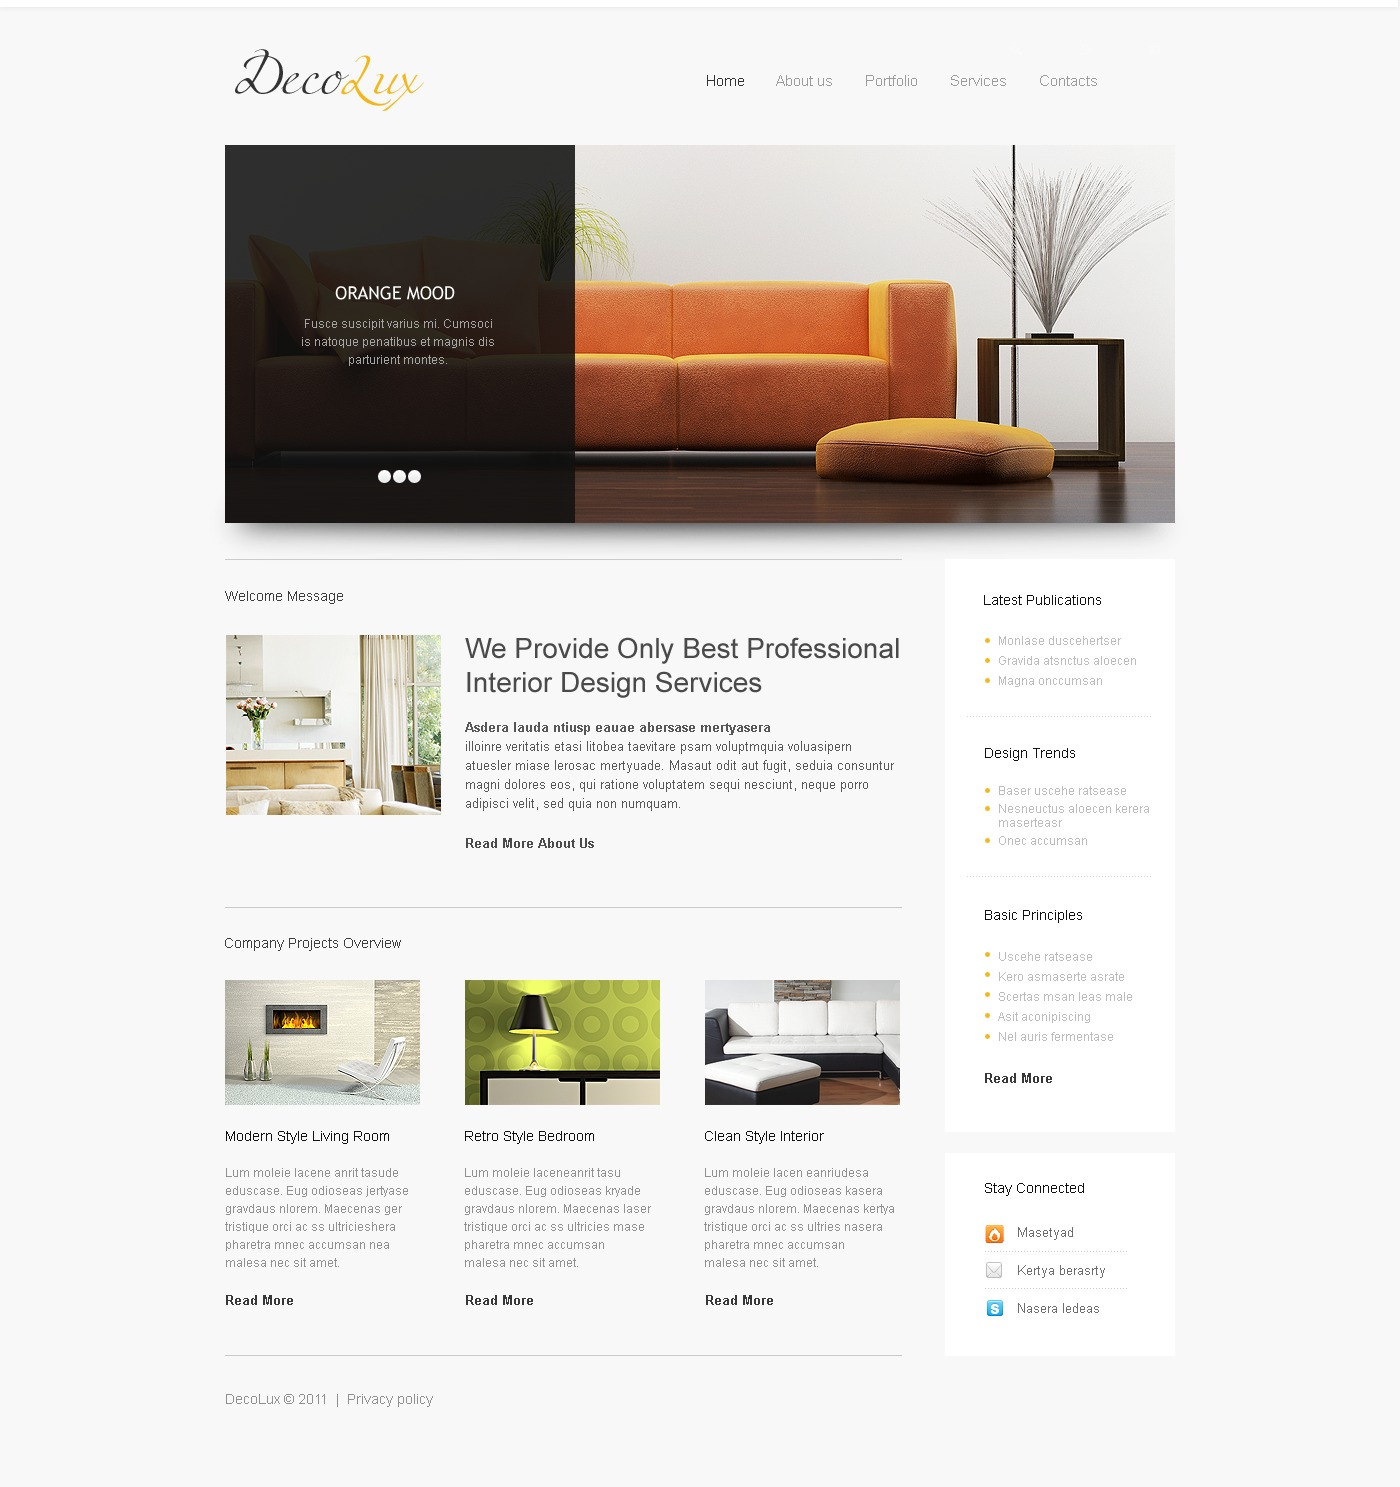 gallery ecomm decor ecommerce with design tech shops inspiration home website